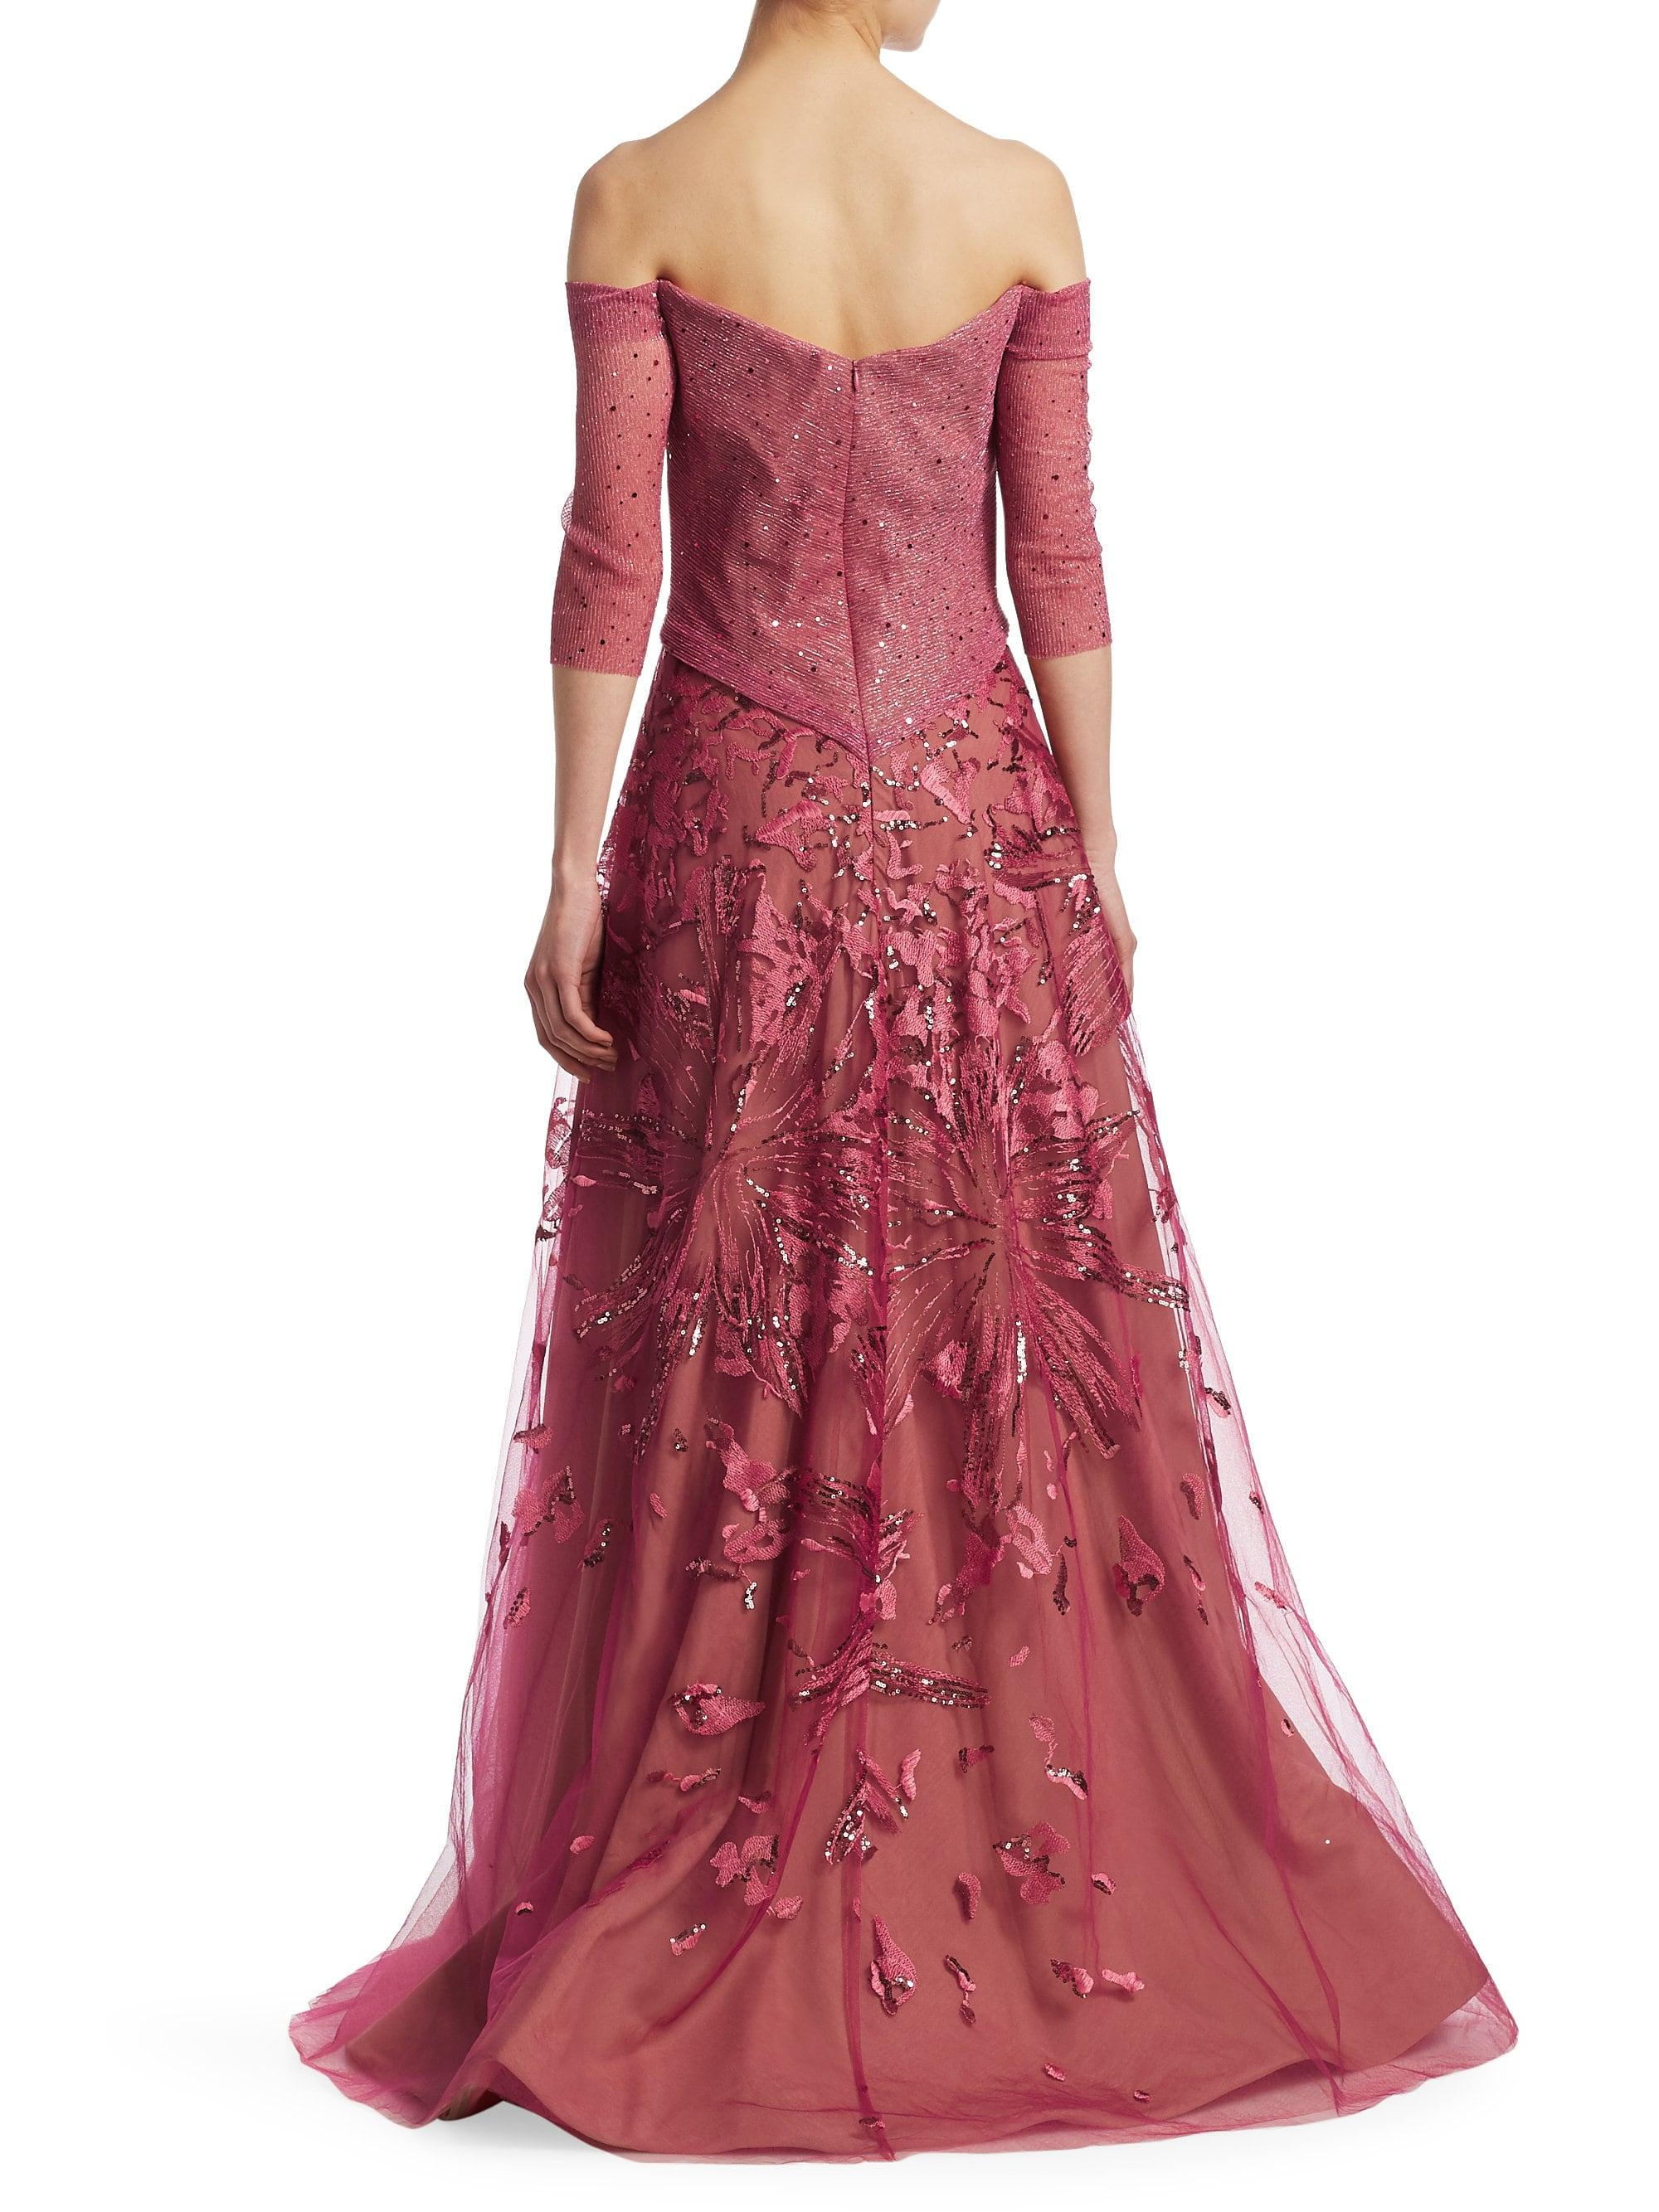 c06aa1eeaa72 Lyst - Rene Ruiz Women's Metallic Embroidered Tulle Gown - Rose - Size 12  in Pink